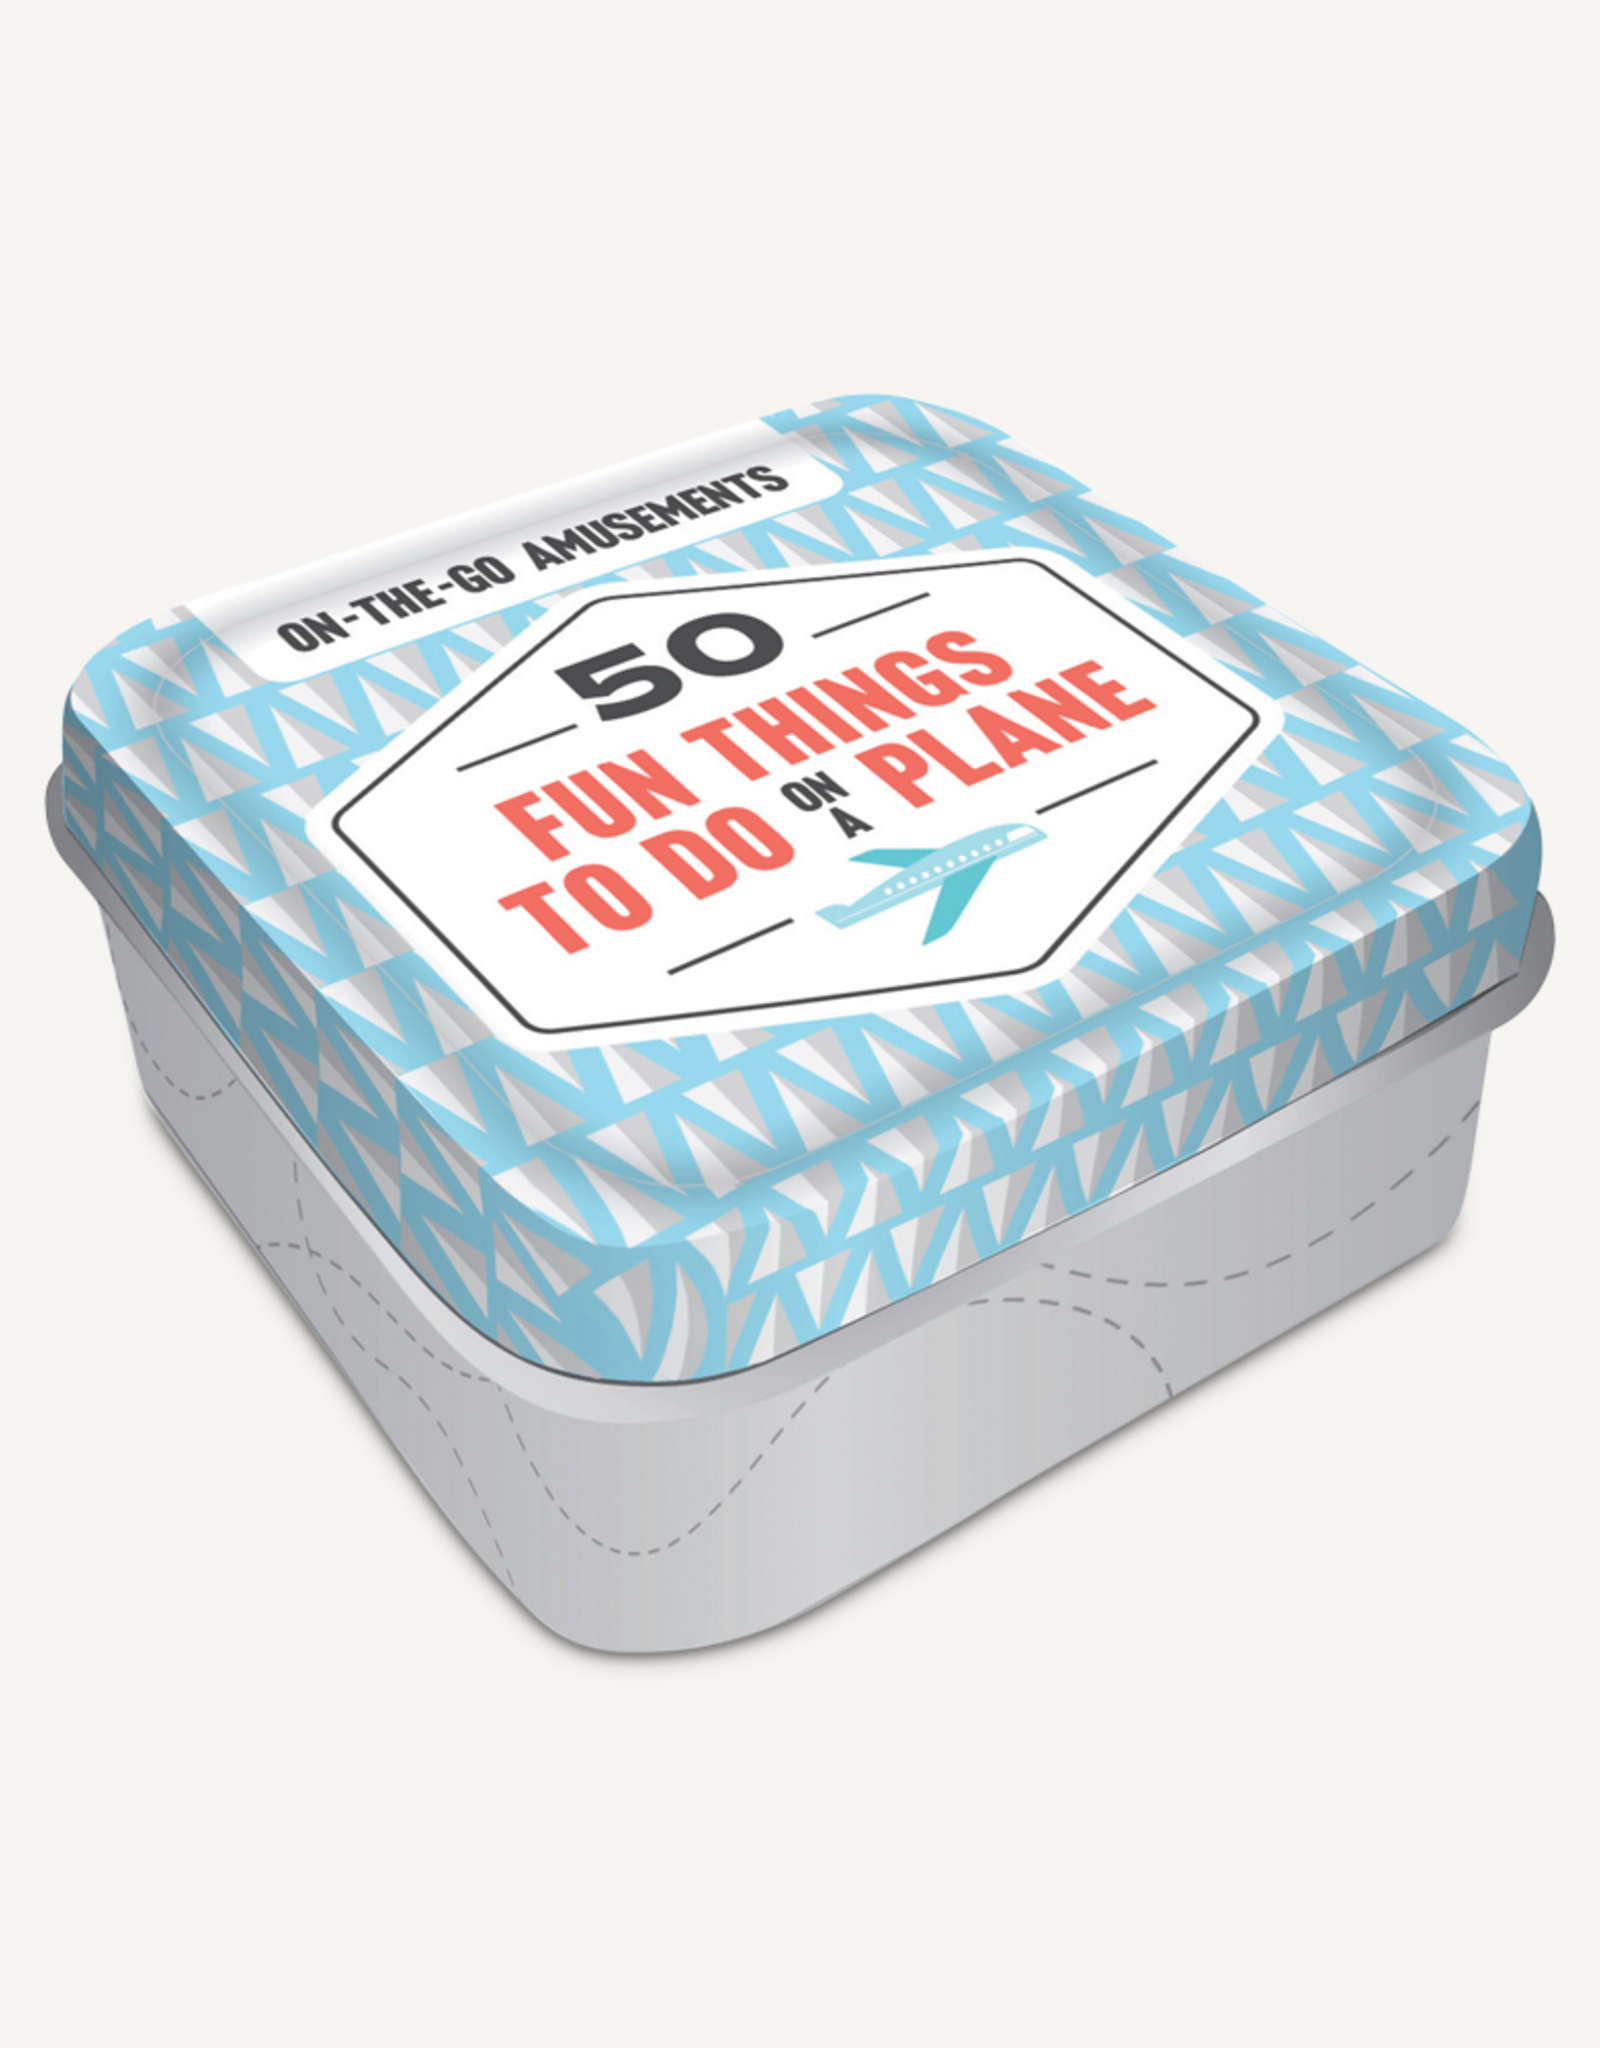 Hachette Book Group Game Tins - Fun Things To Do On A Plane